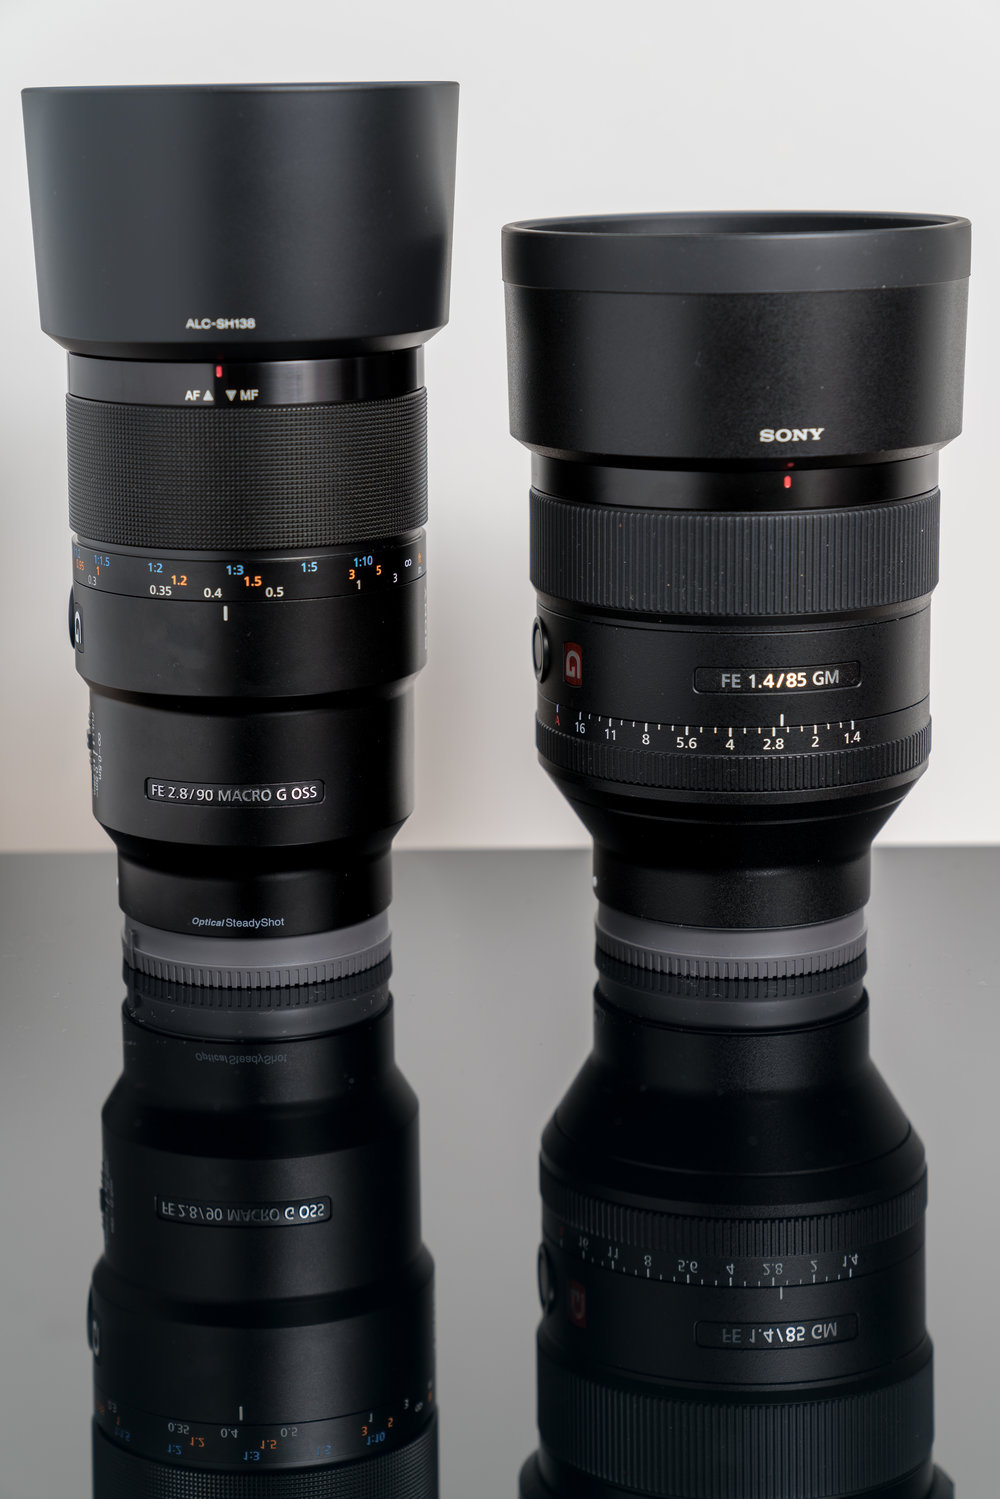 Left to right, Sony 90mm f2.8 Macro and the mighty Sony 85mm f1.4, I intend to try my hand at some portraits and street photography with this bokeh machine.